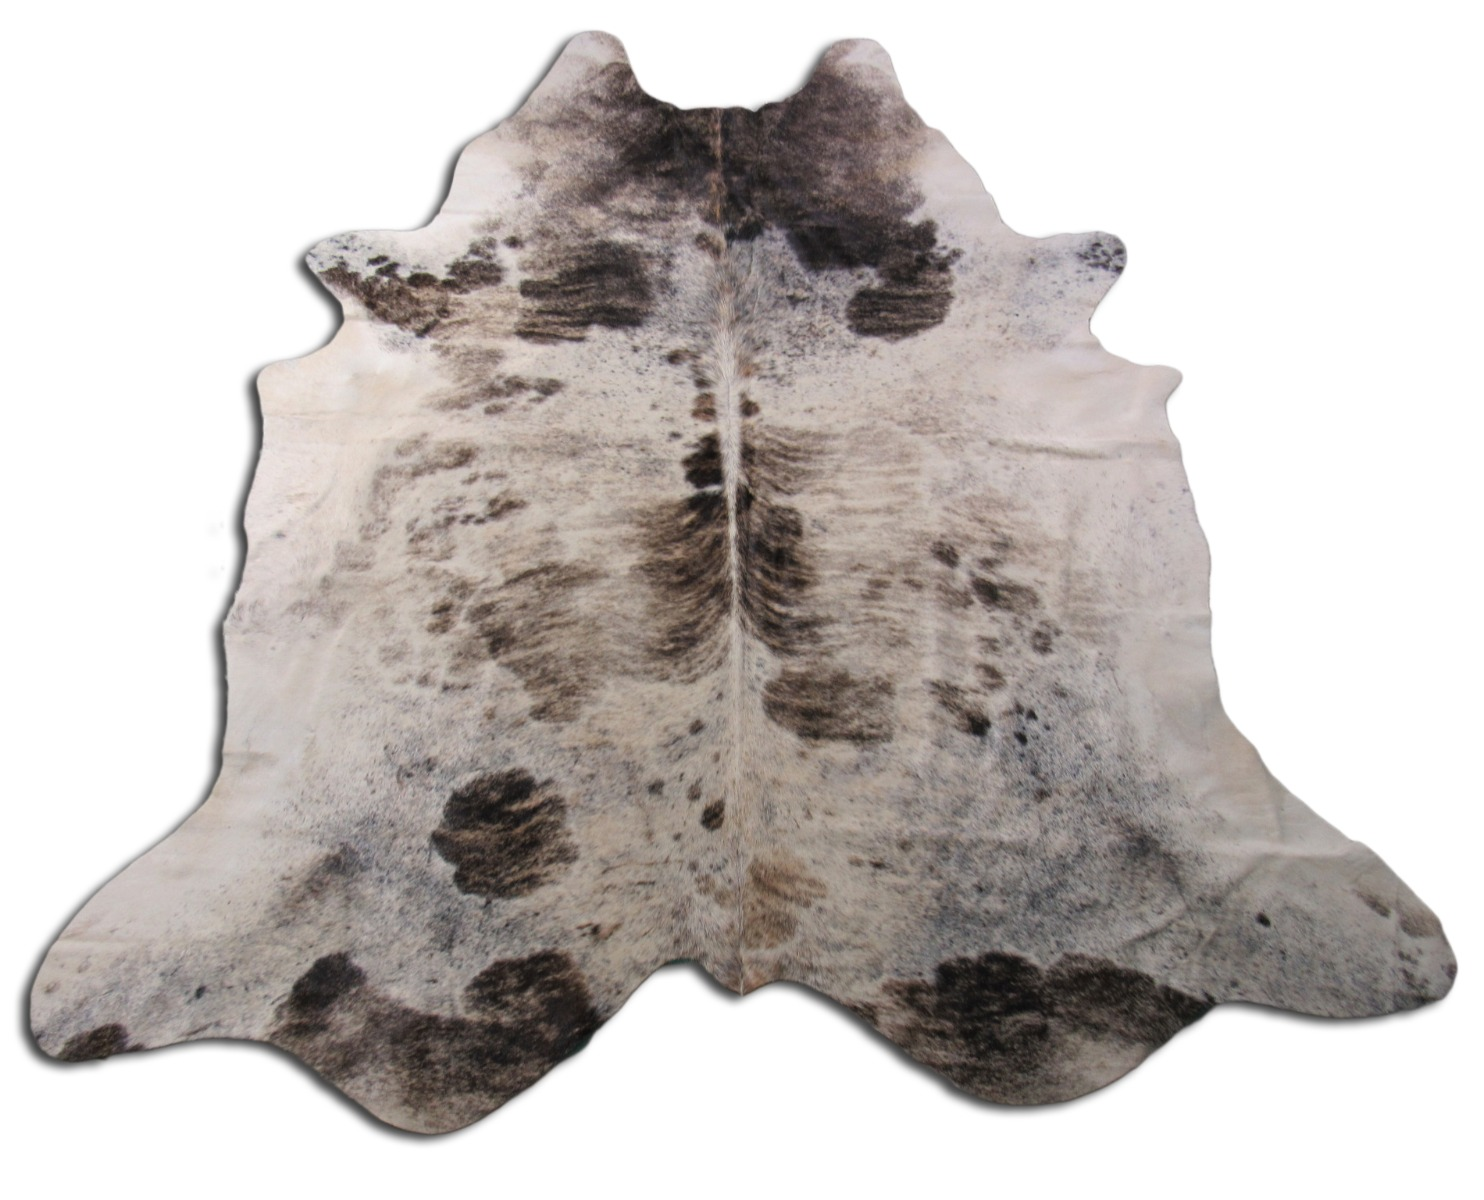 A-1268 Tricolor Speckled Cowhide Rug Size: 7' X 6 1/2'